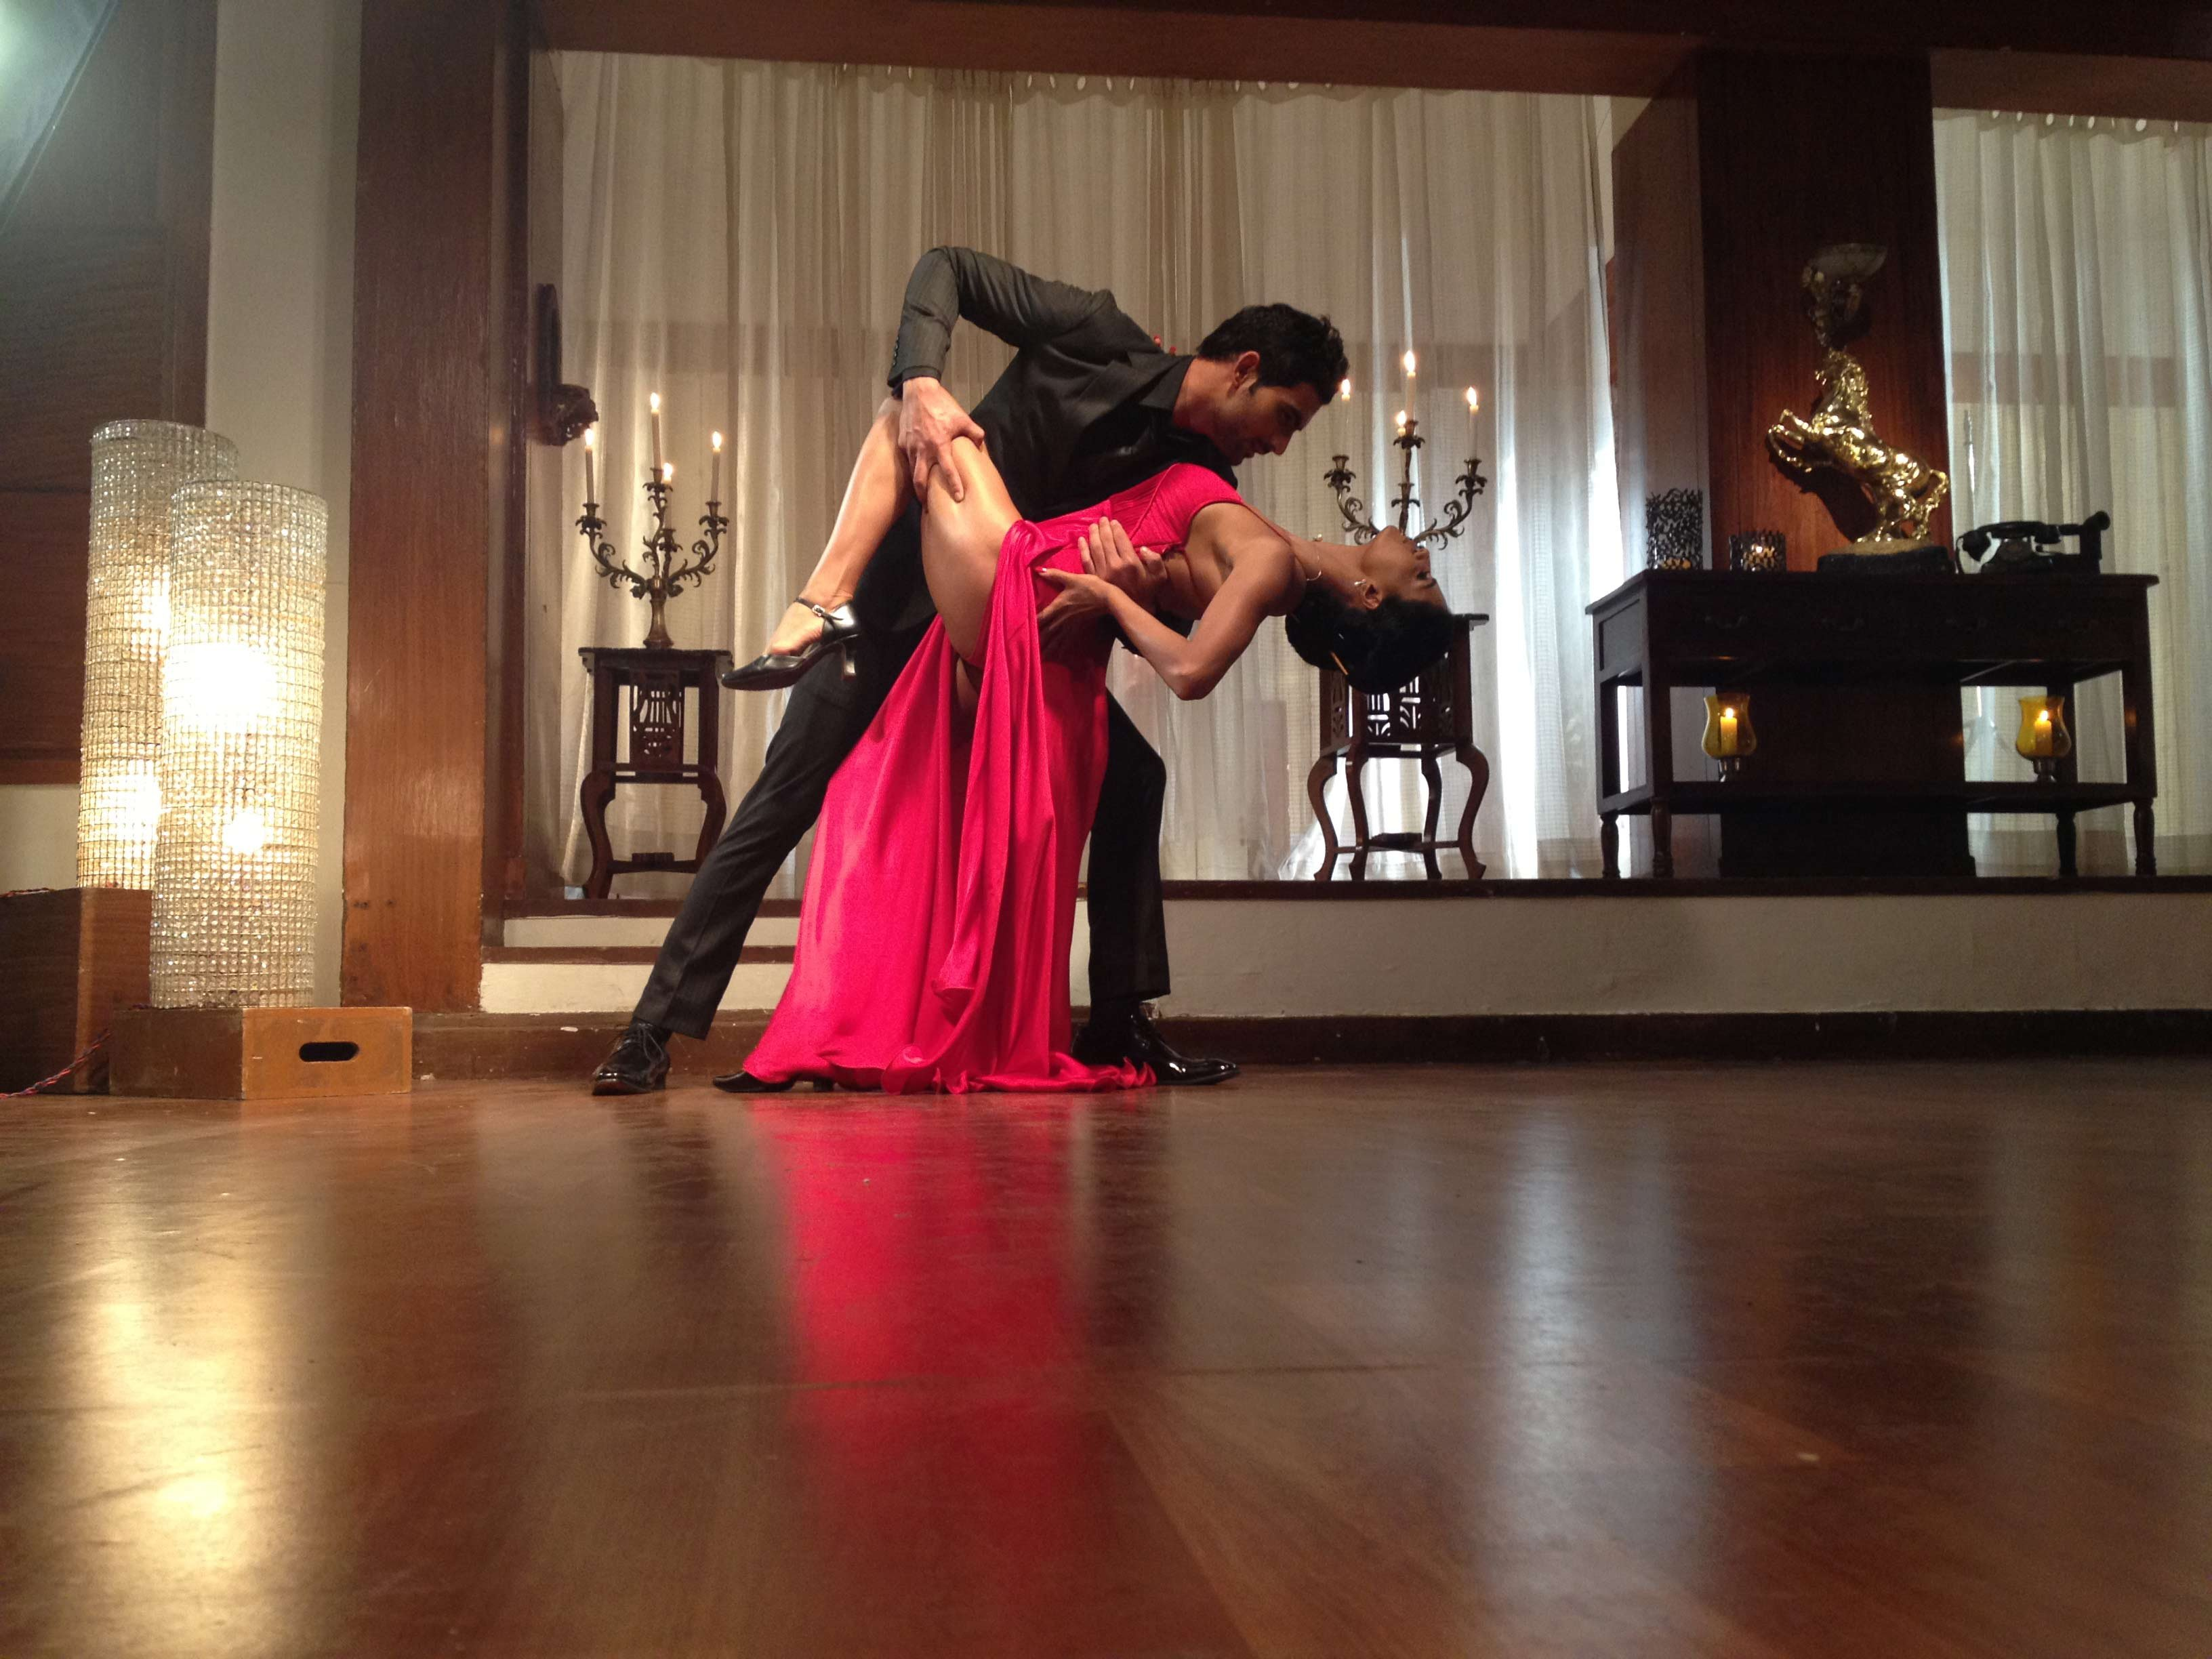 Salsa dancing dance wallpaper | 3264x2448 | 458720 ...